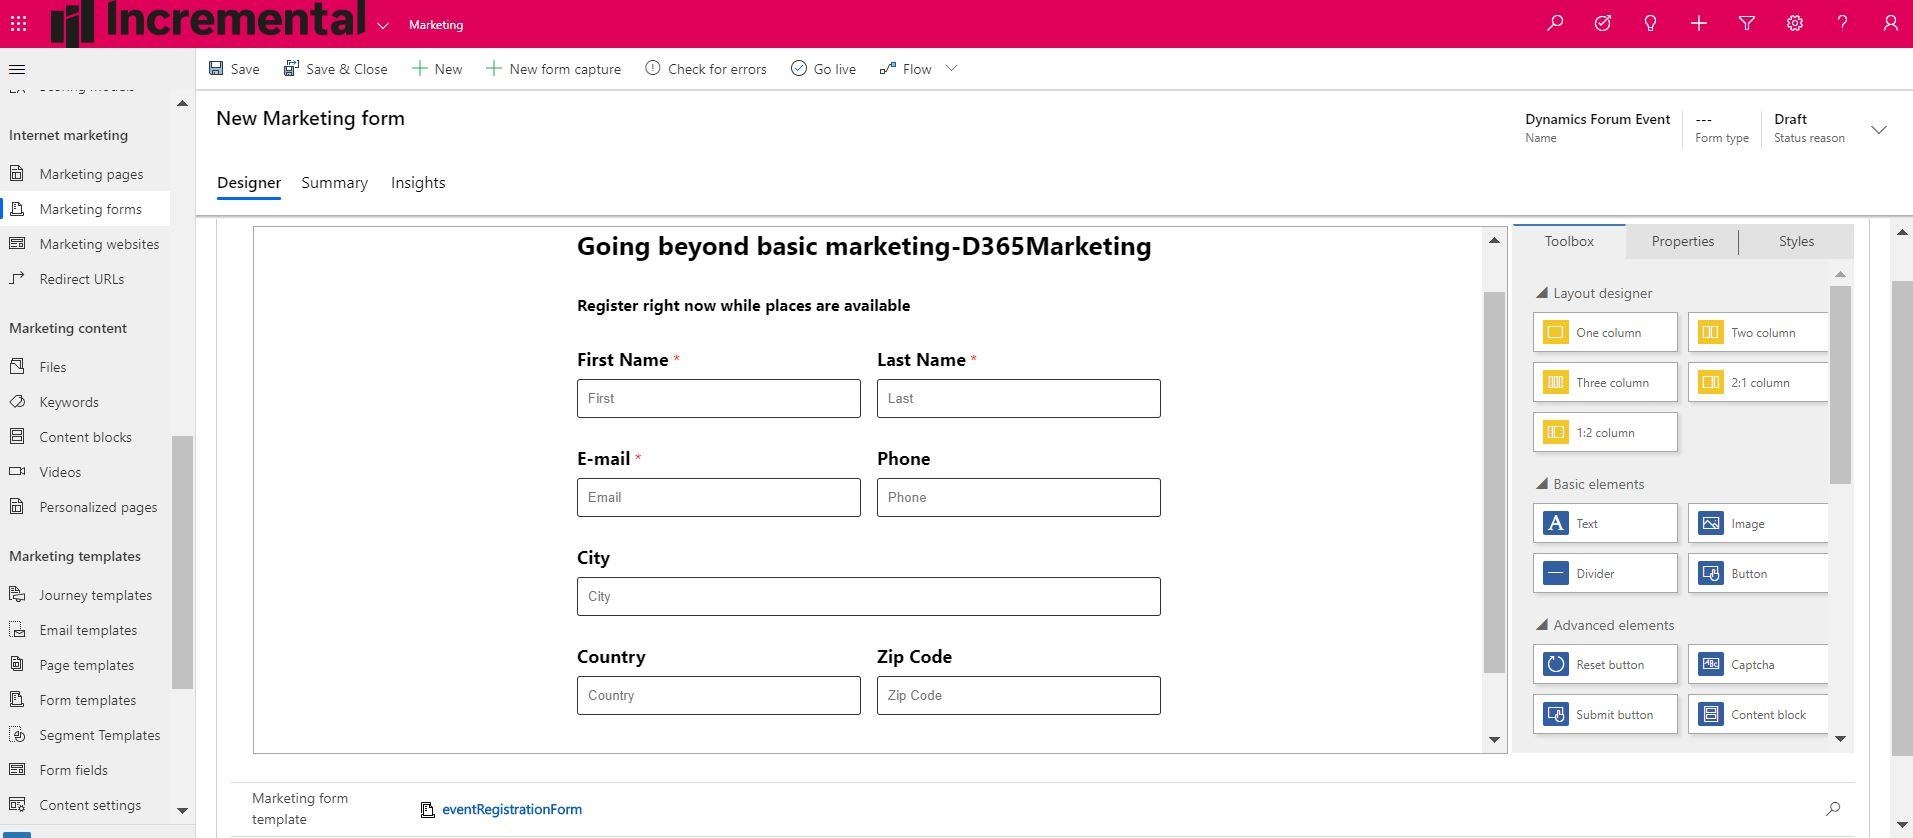 screengrab of Dynamics 365 Marketing